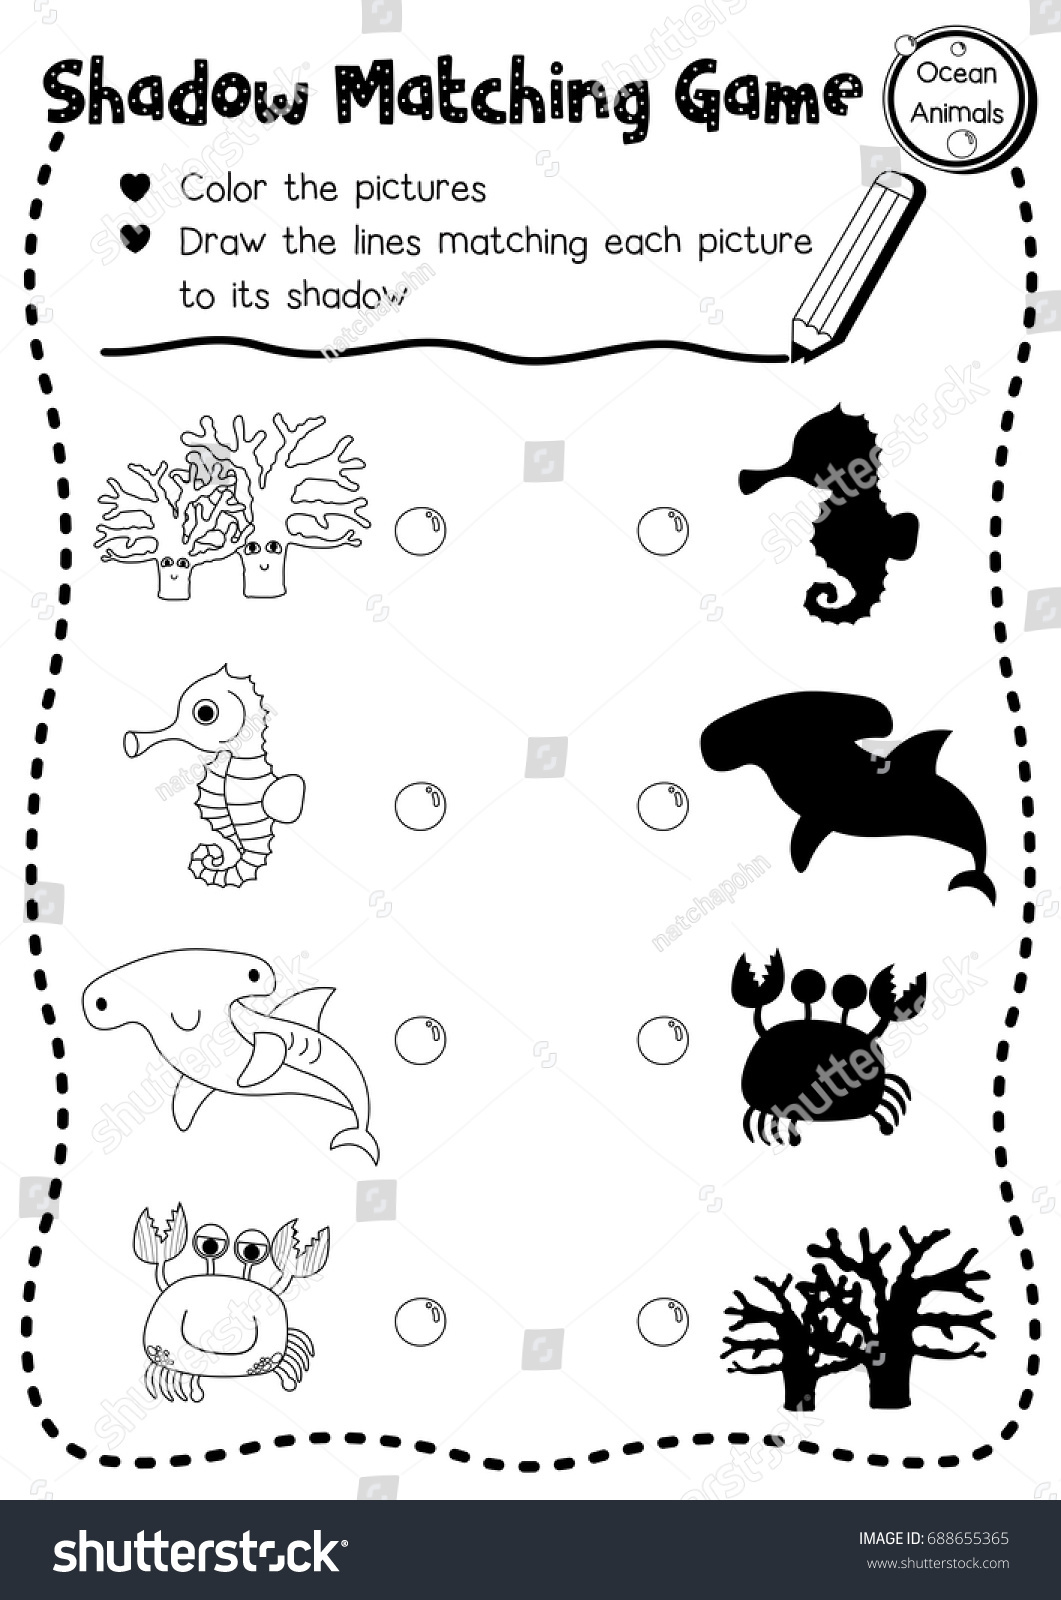 Shadow Matching Game Ocean Animals Preschool Stock Vector